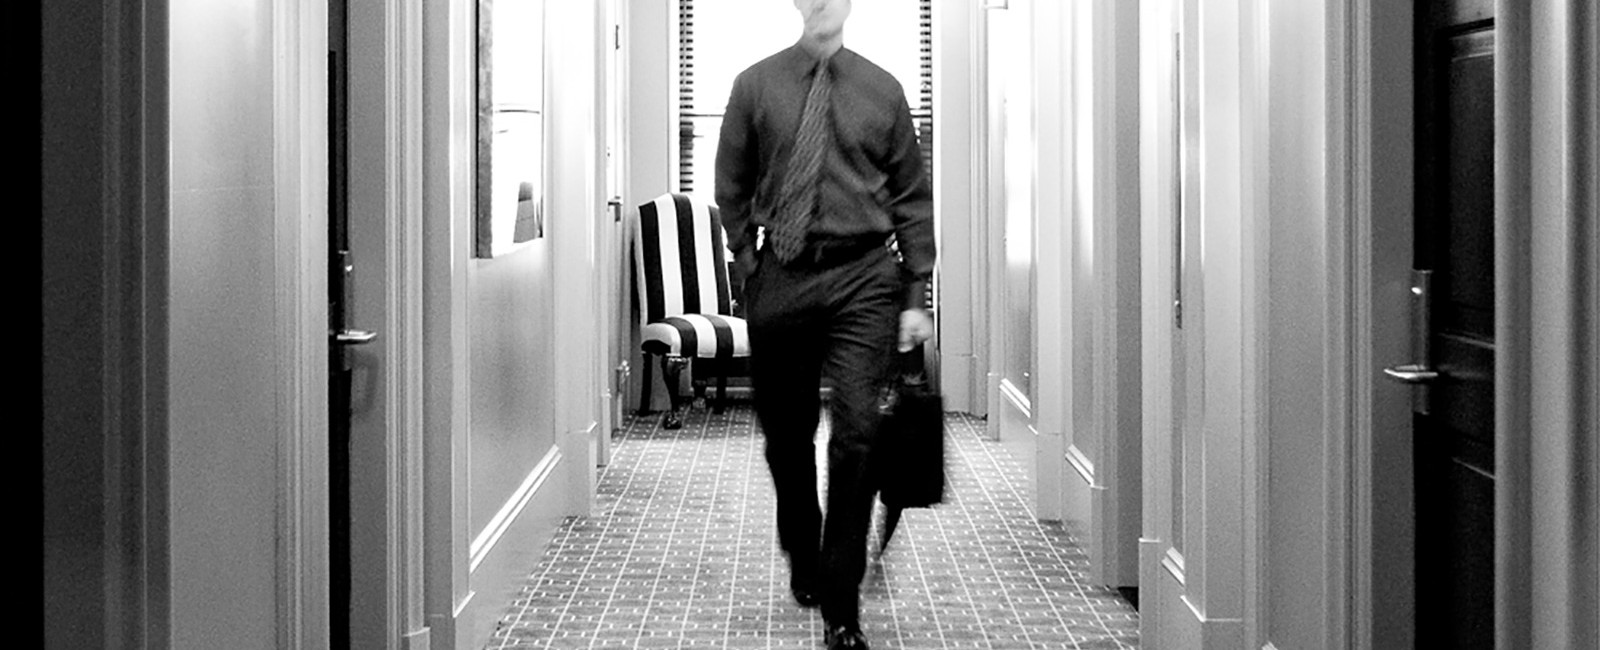 black and white photograph of a guest walking towards the elevators from his room.